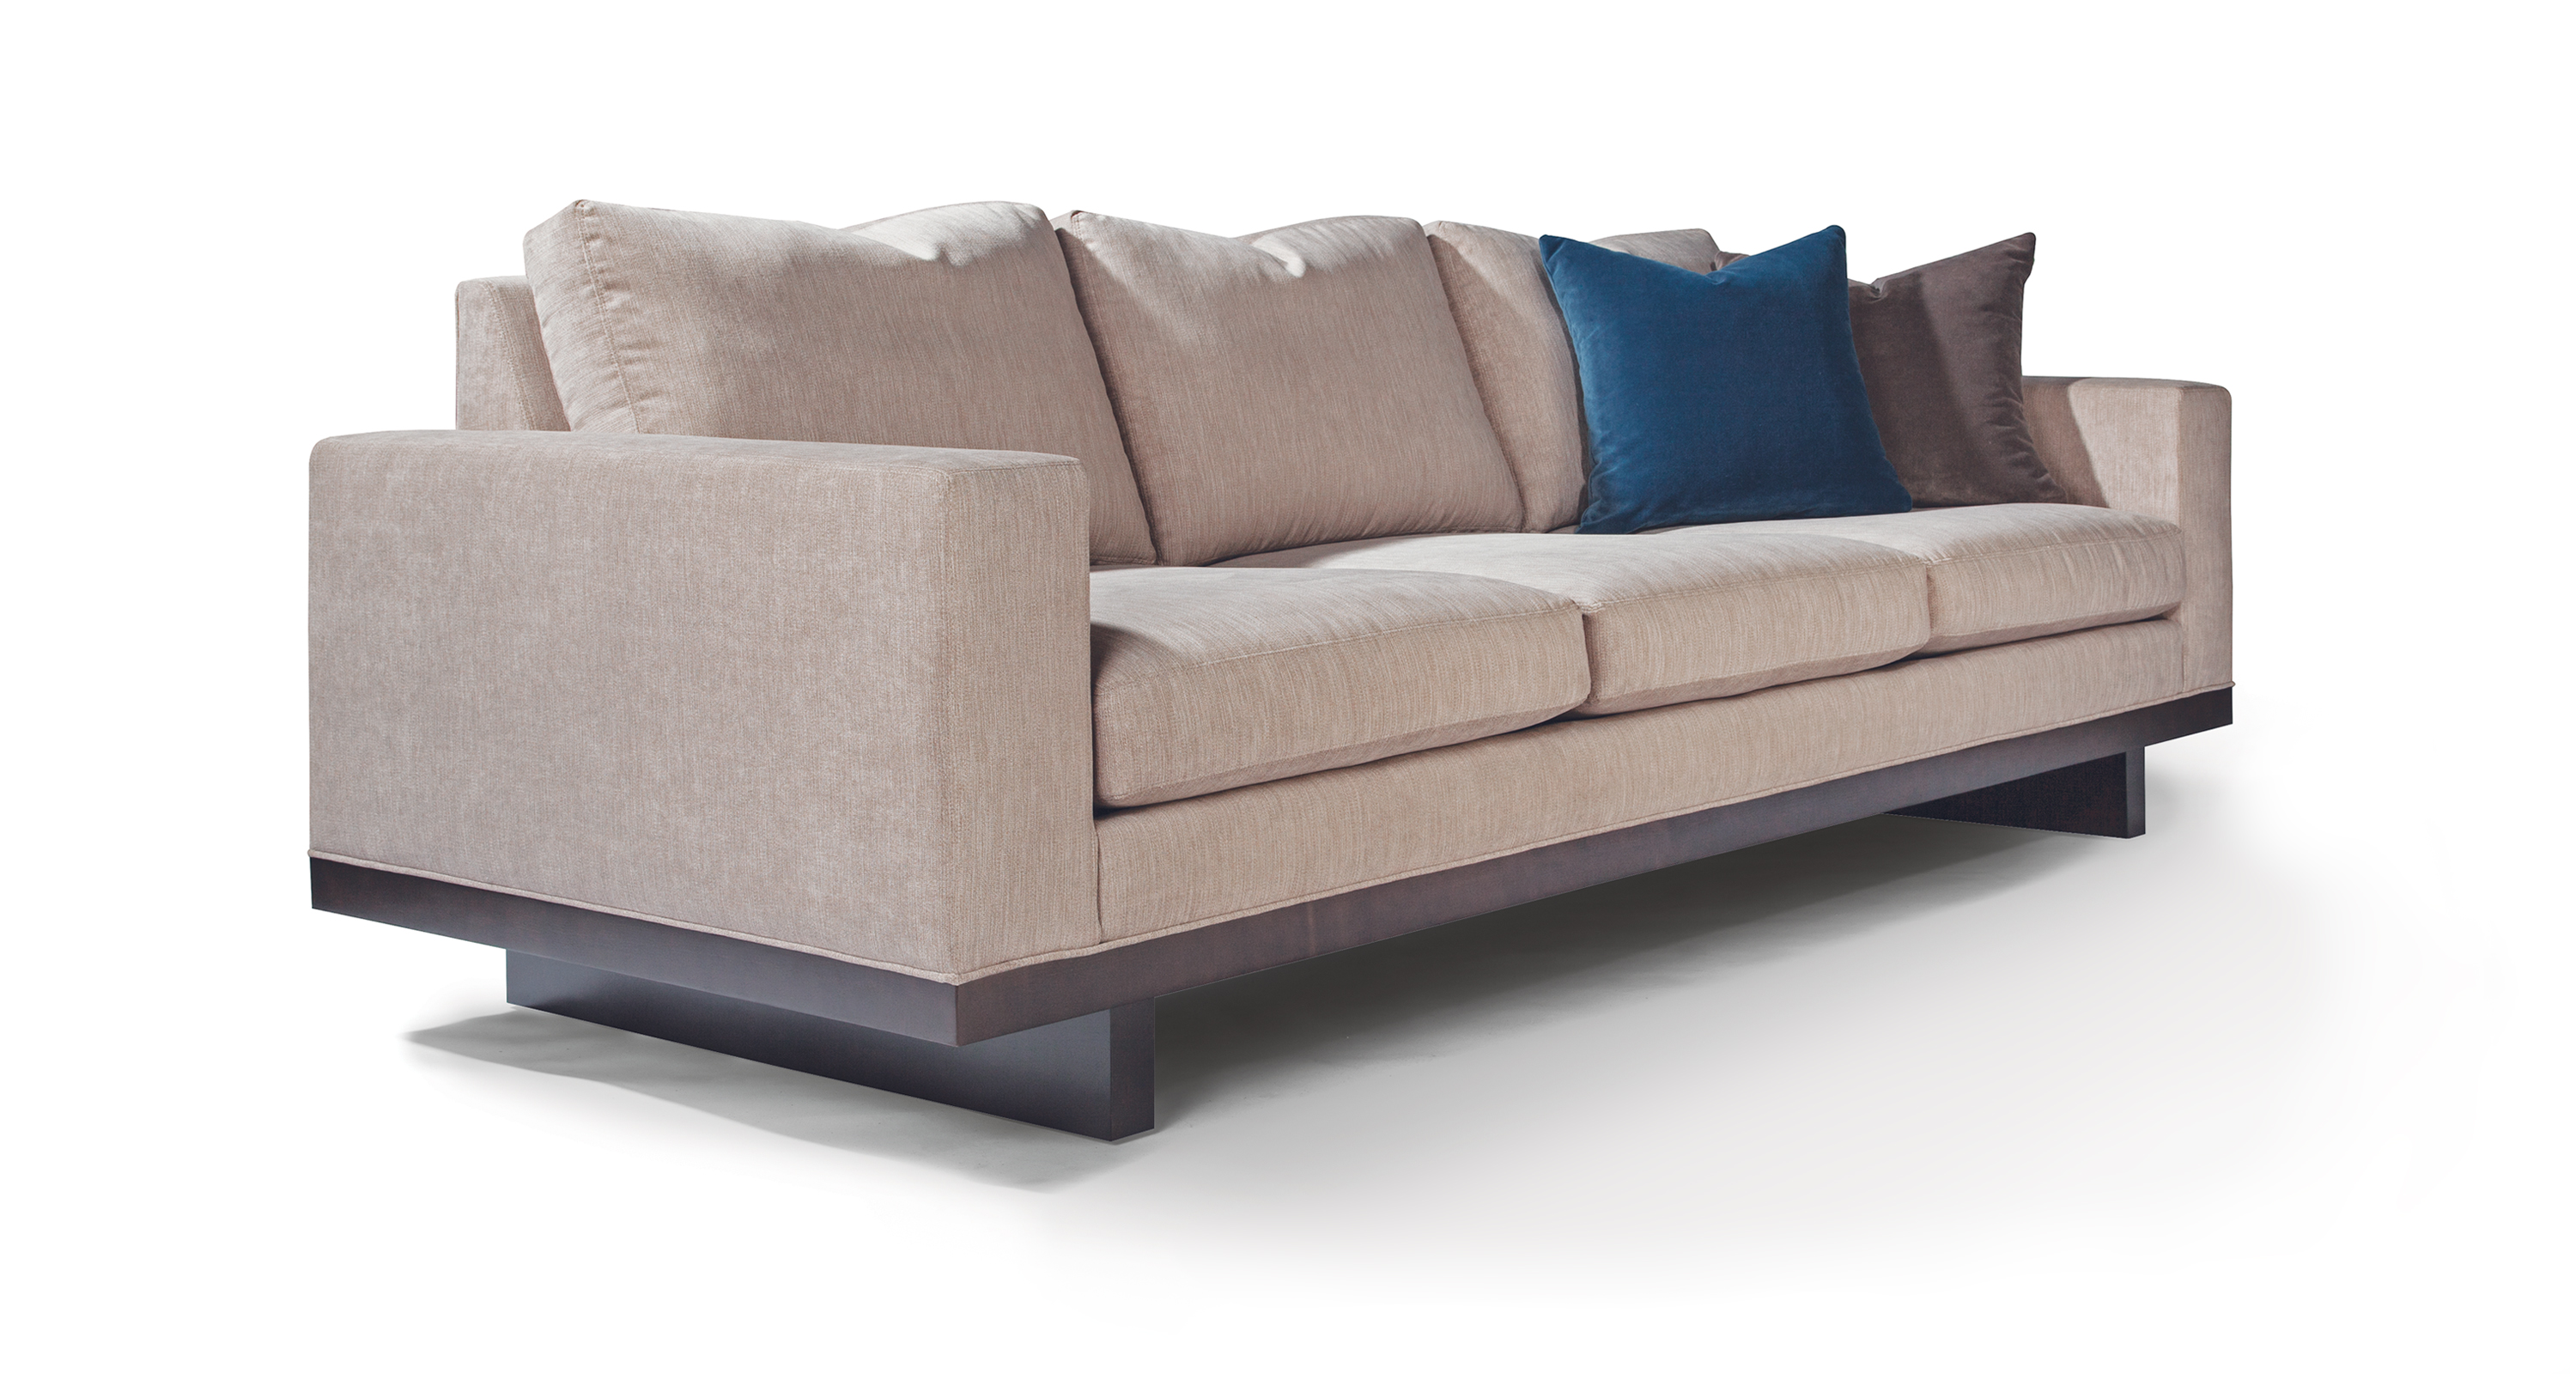 The LACollection Sofa